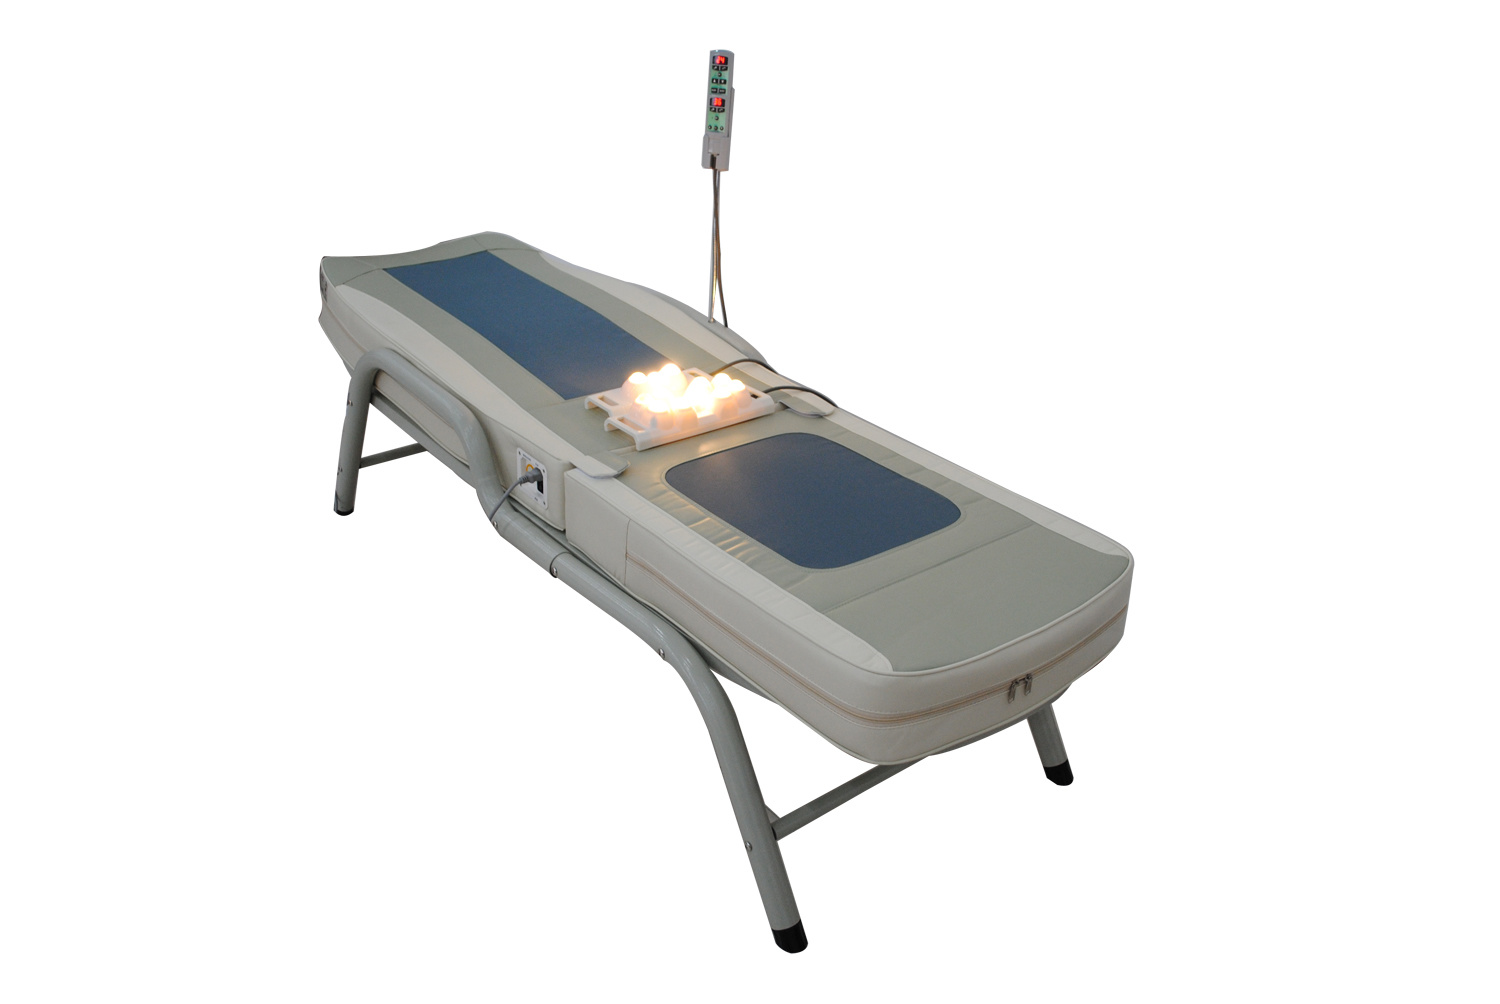 table massage laser p electric medical facial cosmo treatment bed fully